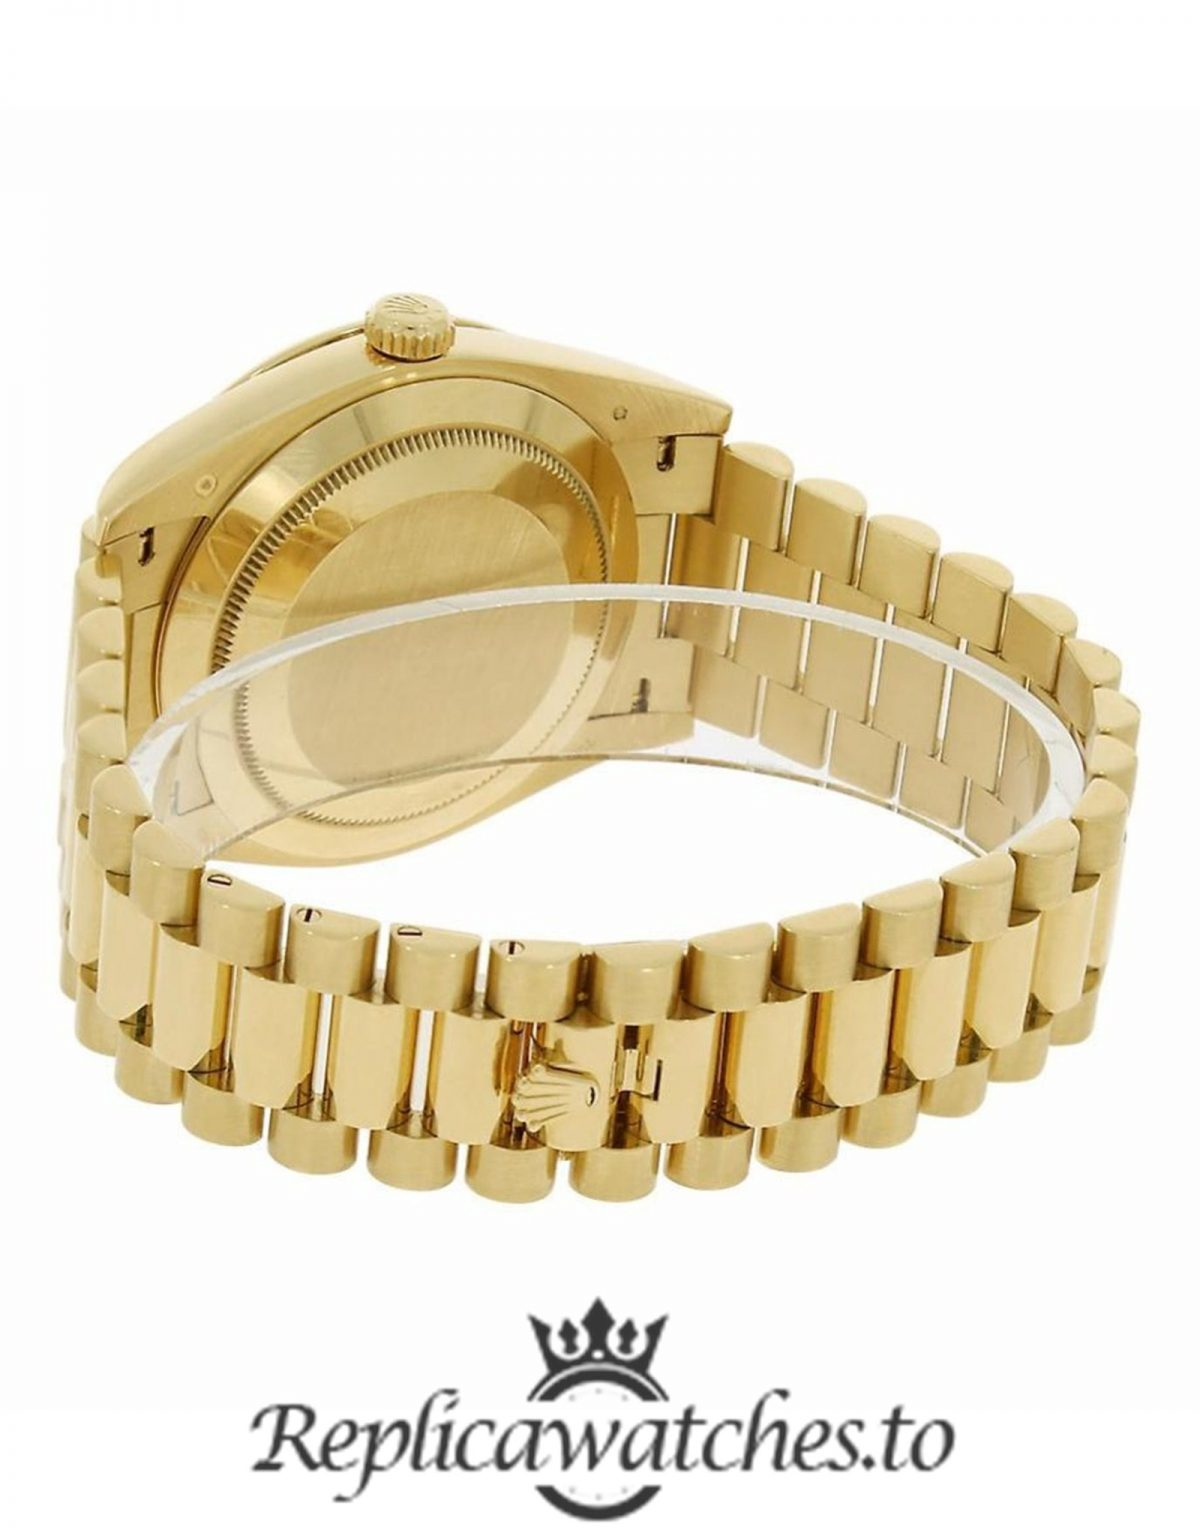 Rolex Day Date Replica 228348RBR 003 Yellow Gold Strap 40MM